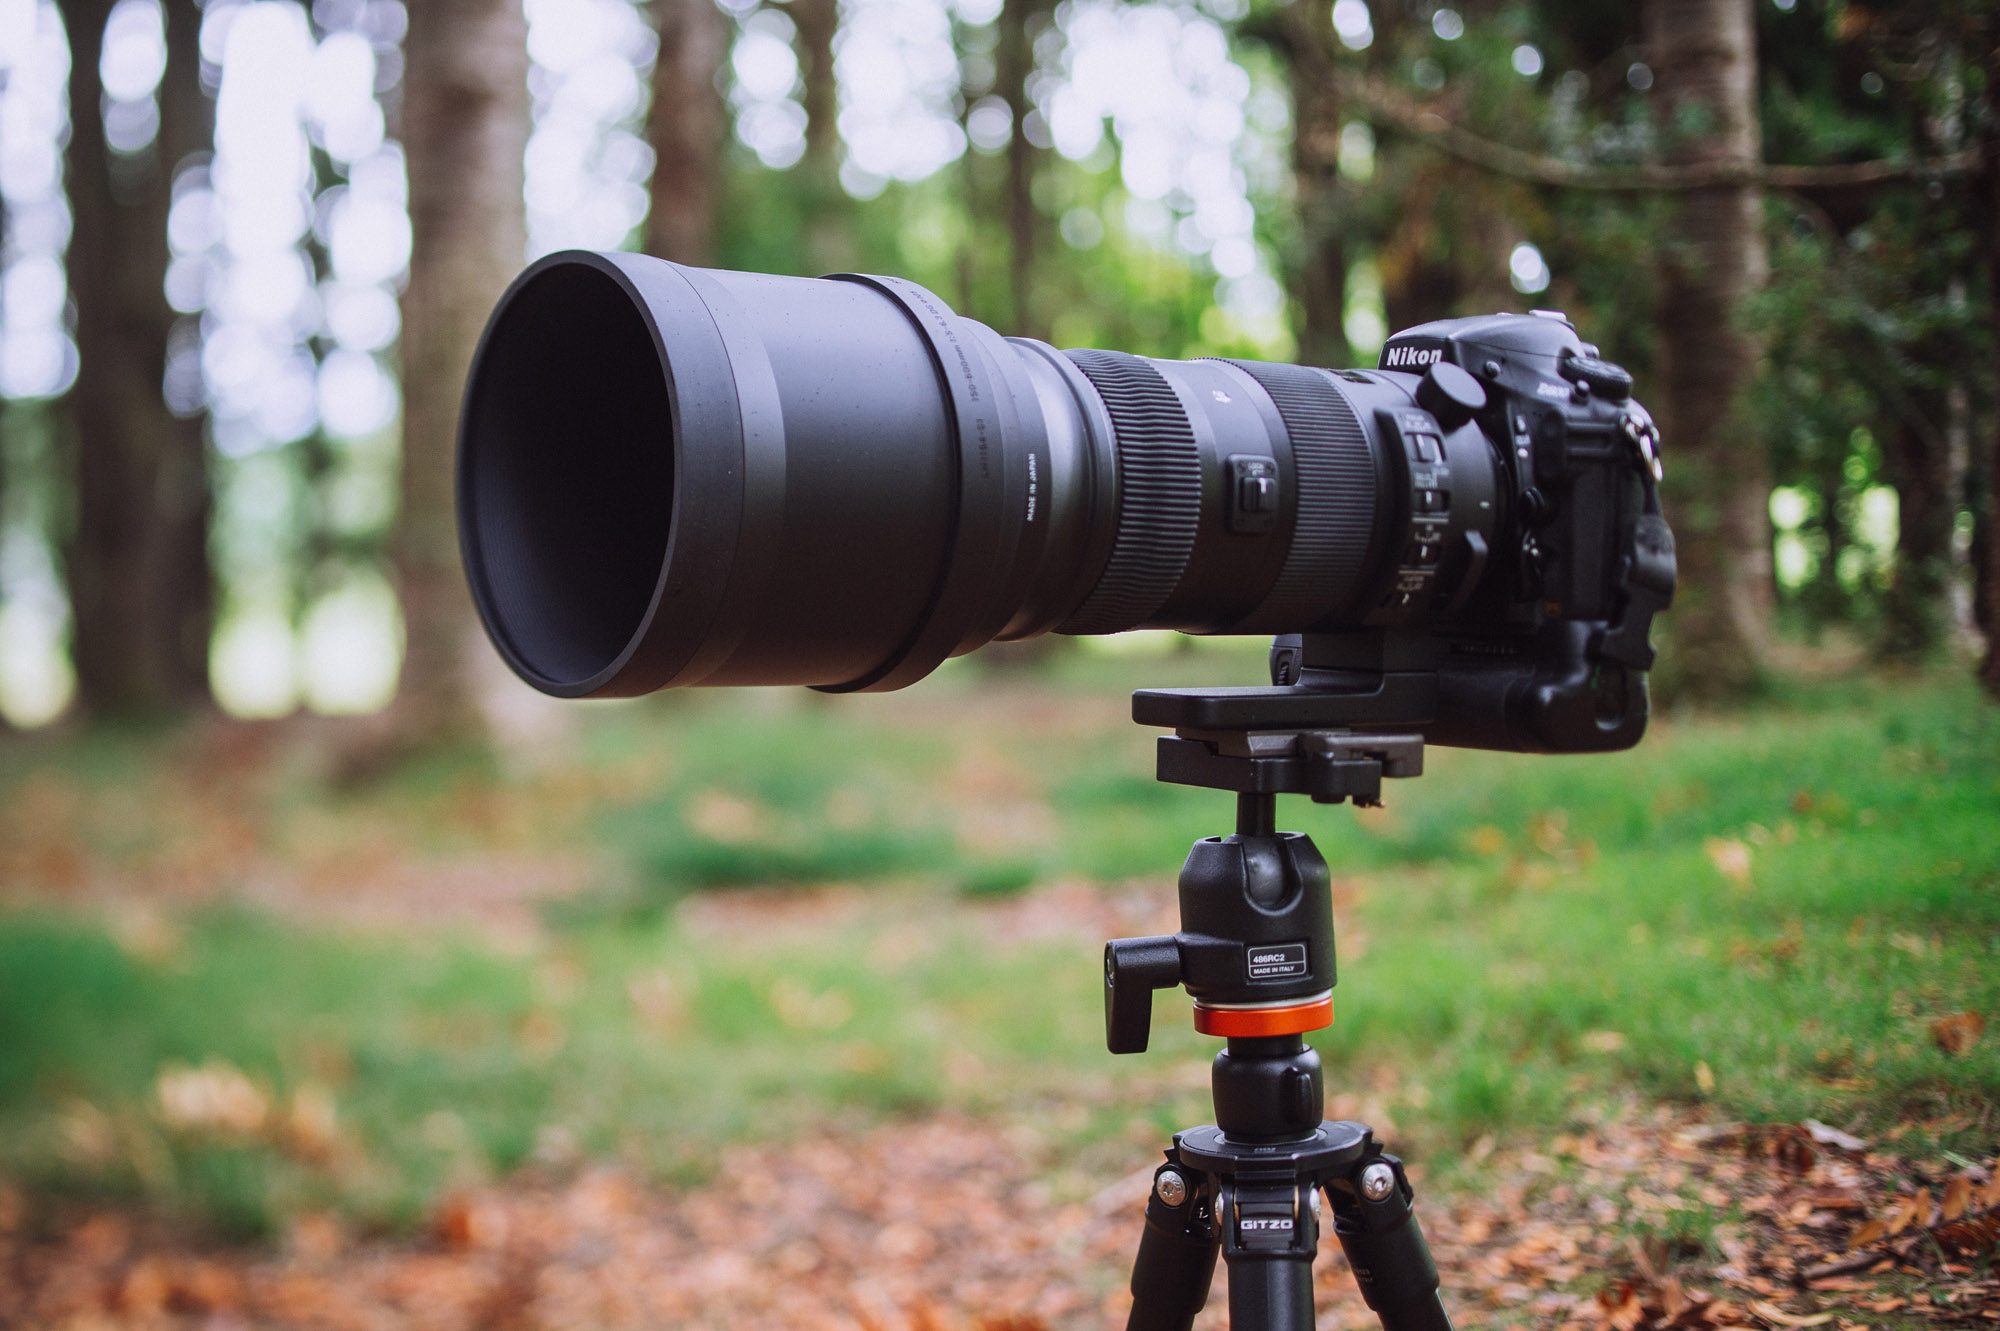 sigma_150-600mm_s_review02